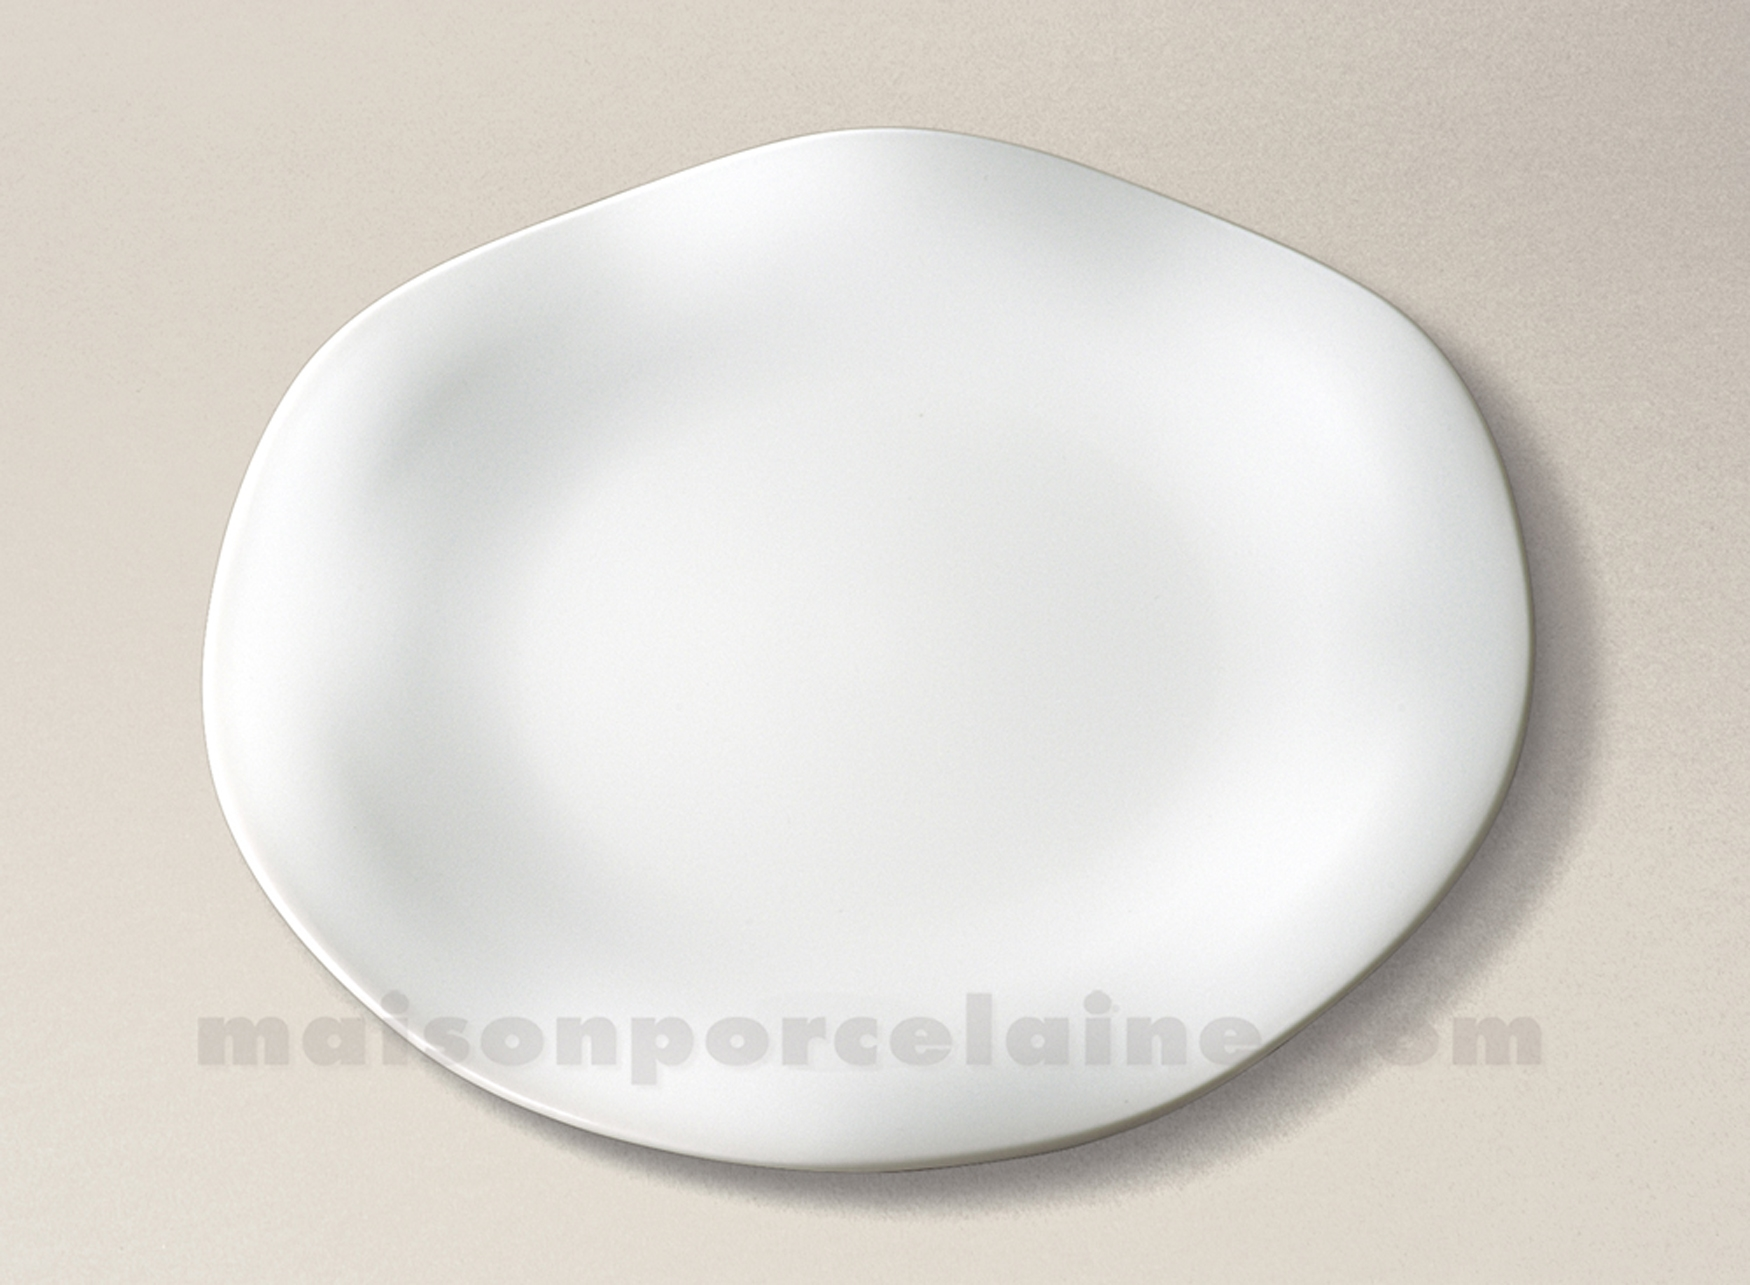 assiette plate limoges porcelaine blanche gala d27 5 maison de la porcelaine. Black Bedroom Furniture Sets. Home Design Ideas